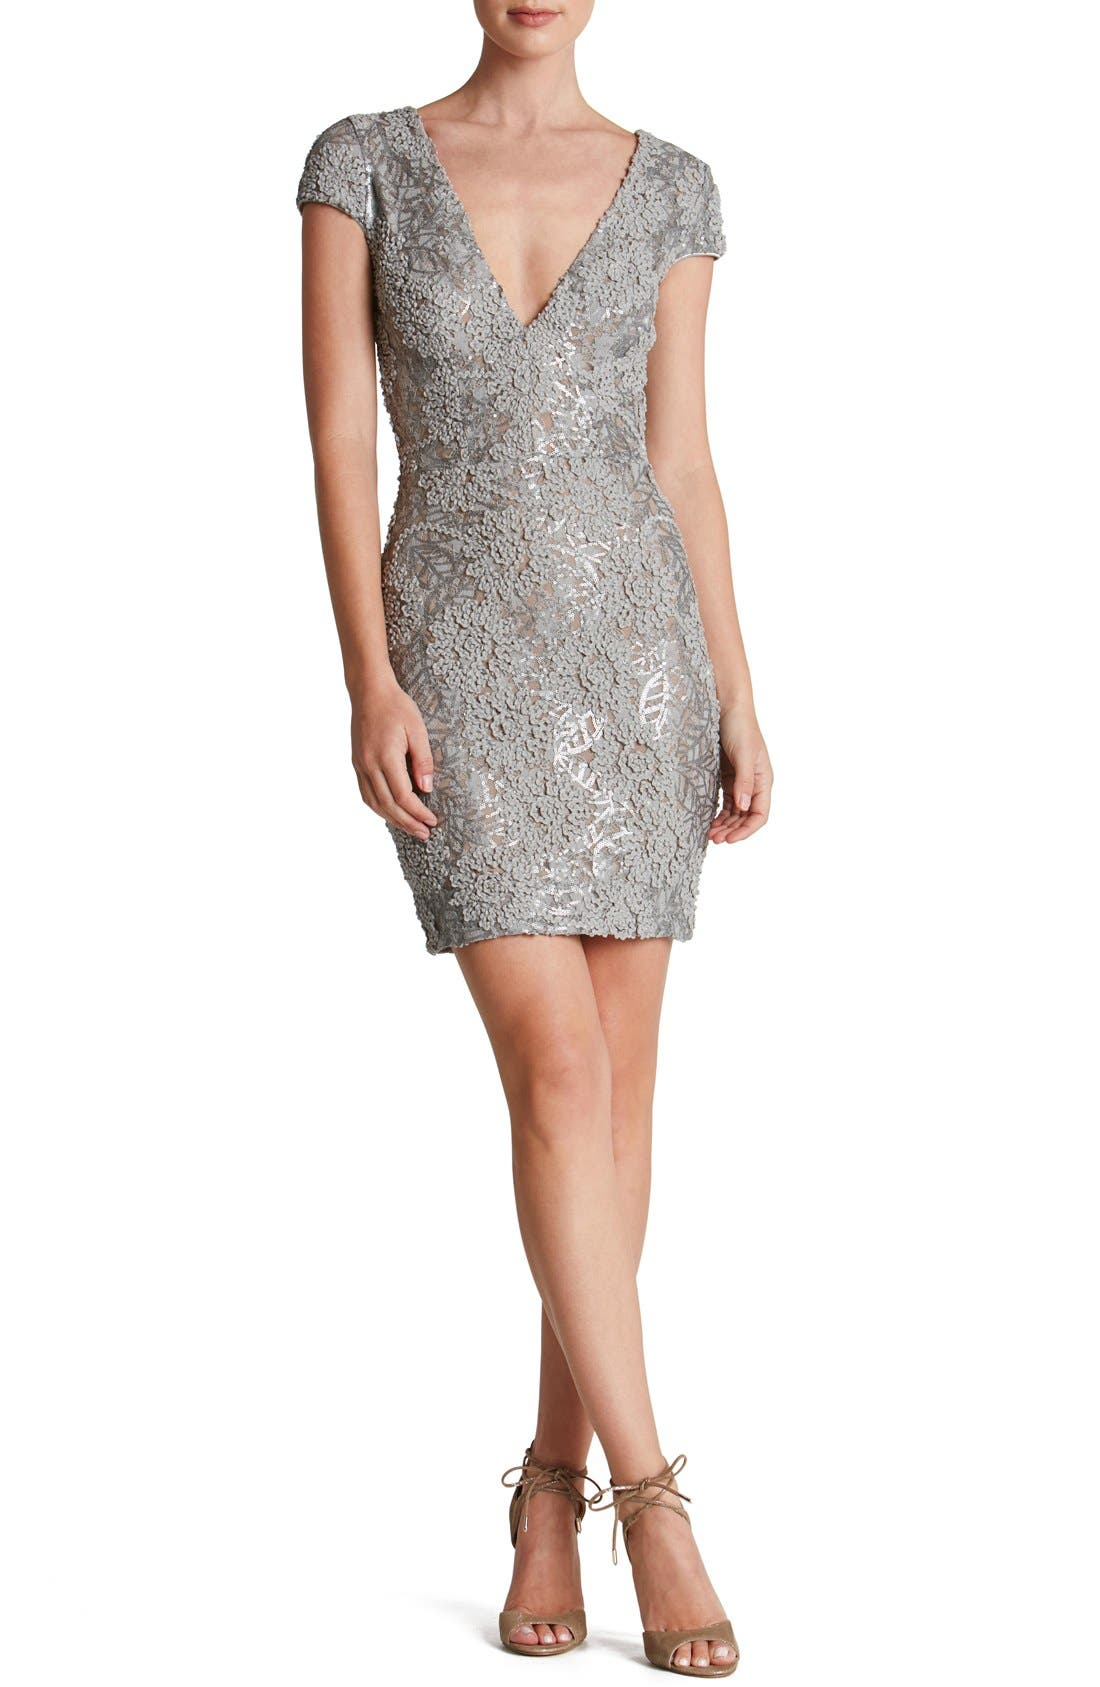 Main Image - Dress the Population 'Zoe' Embellished Mesh Body-Con Dress